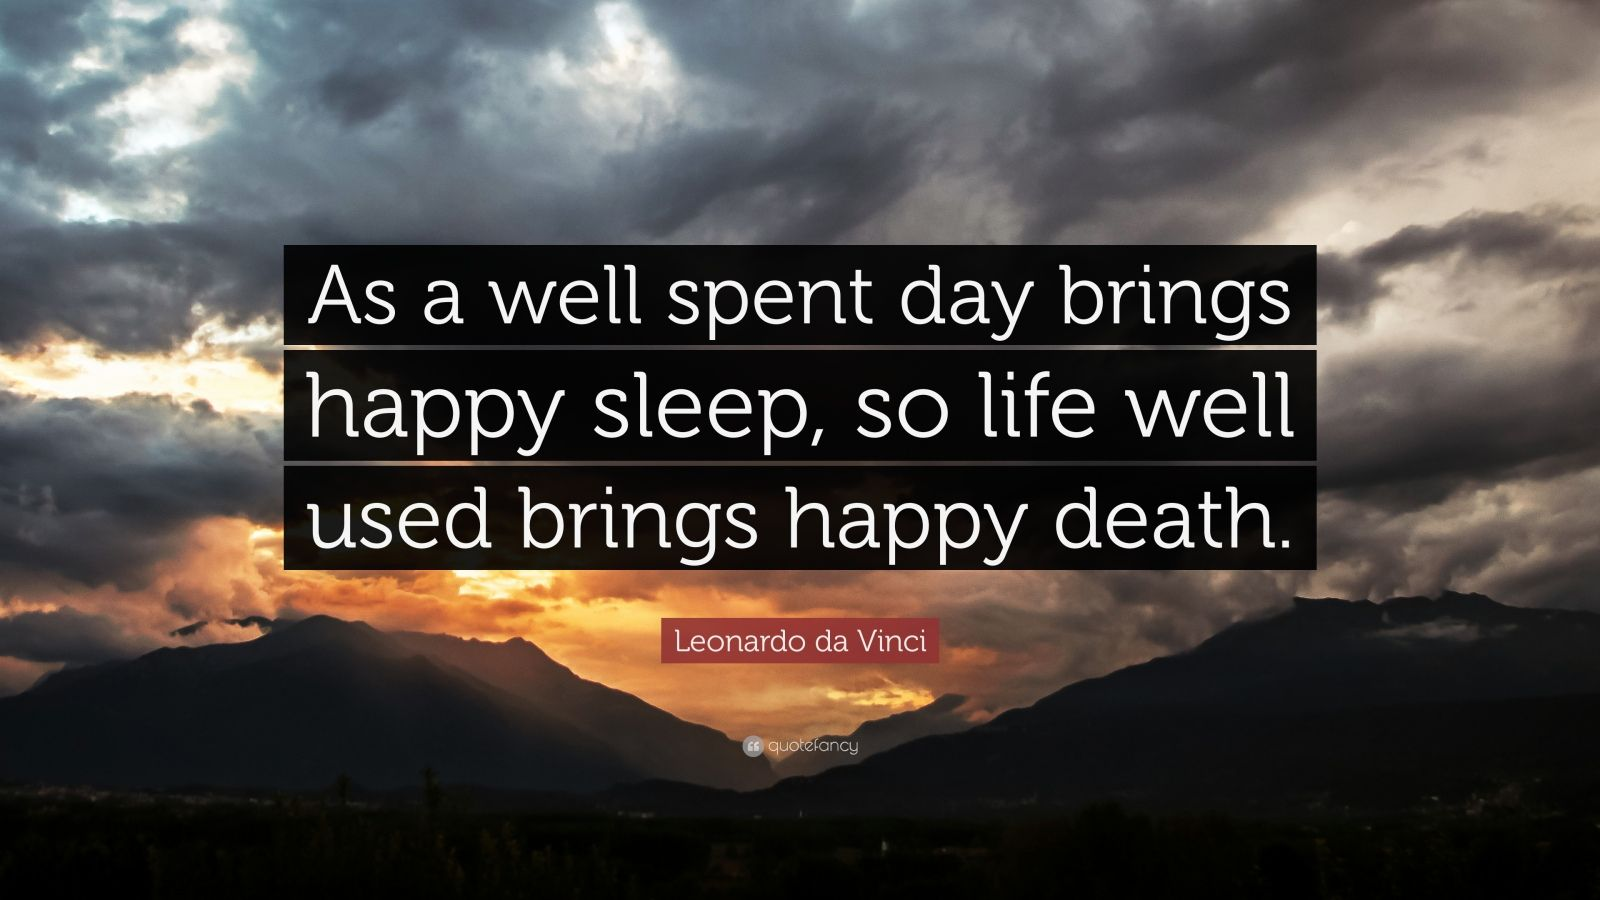 """Leonardo da Vinci Quote: """"As a well spent day brings happy sleep, so life well used brings happy death."""""""